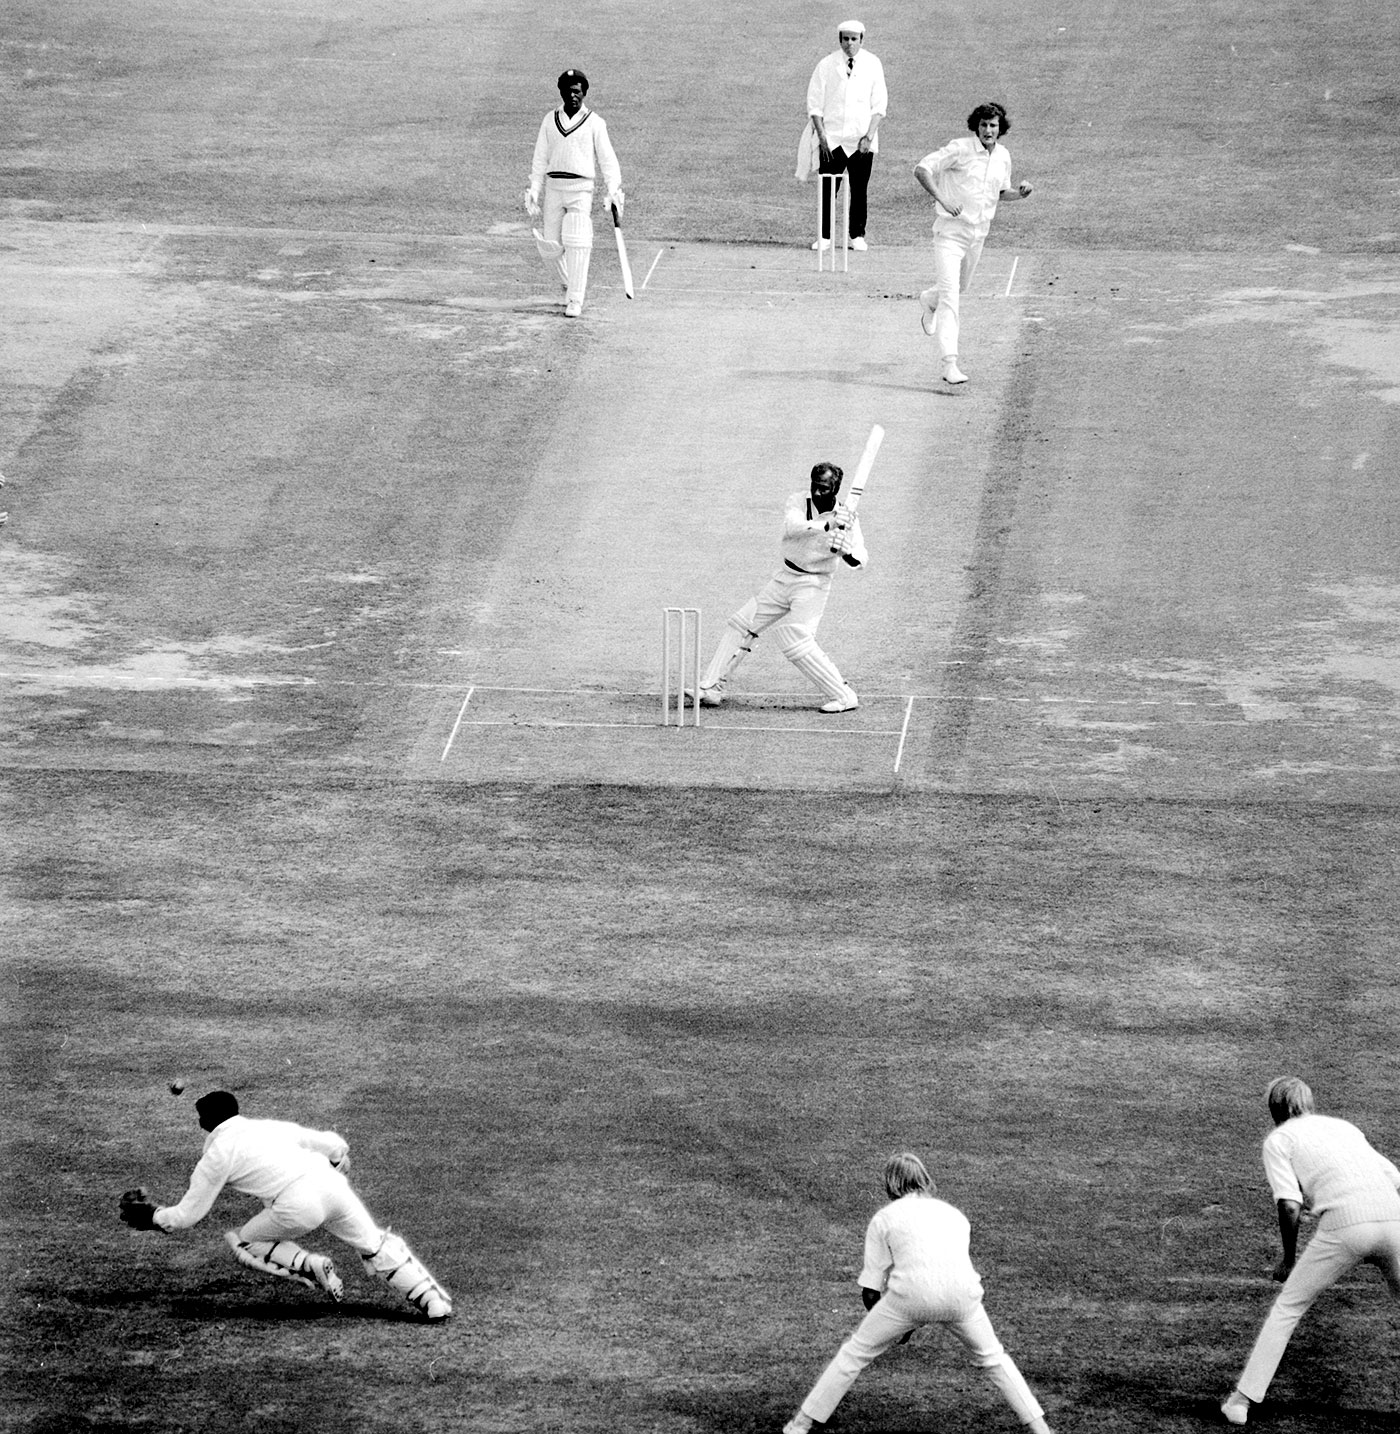 Nothing gets past me: Alan Knott intercepts a ball after Rohan Kanhai swings and misses at Lord's in 1973